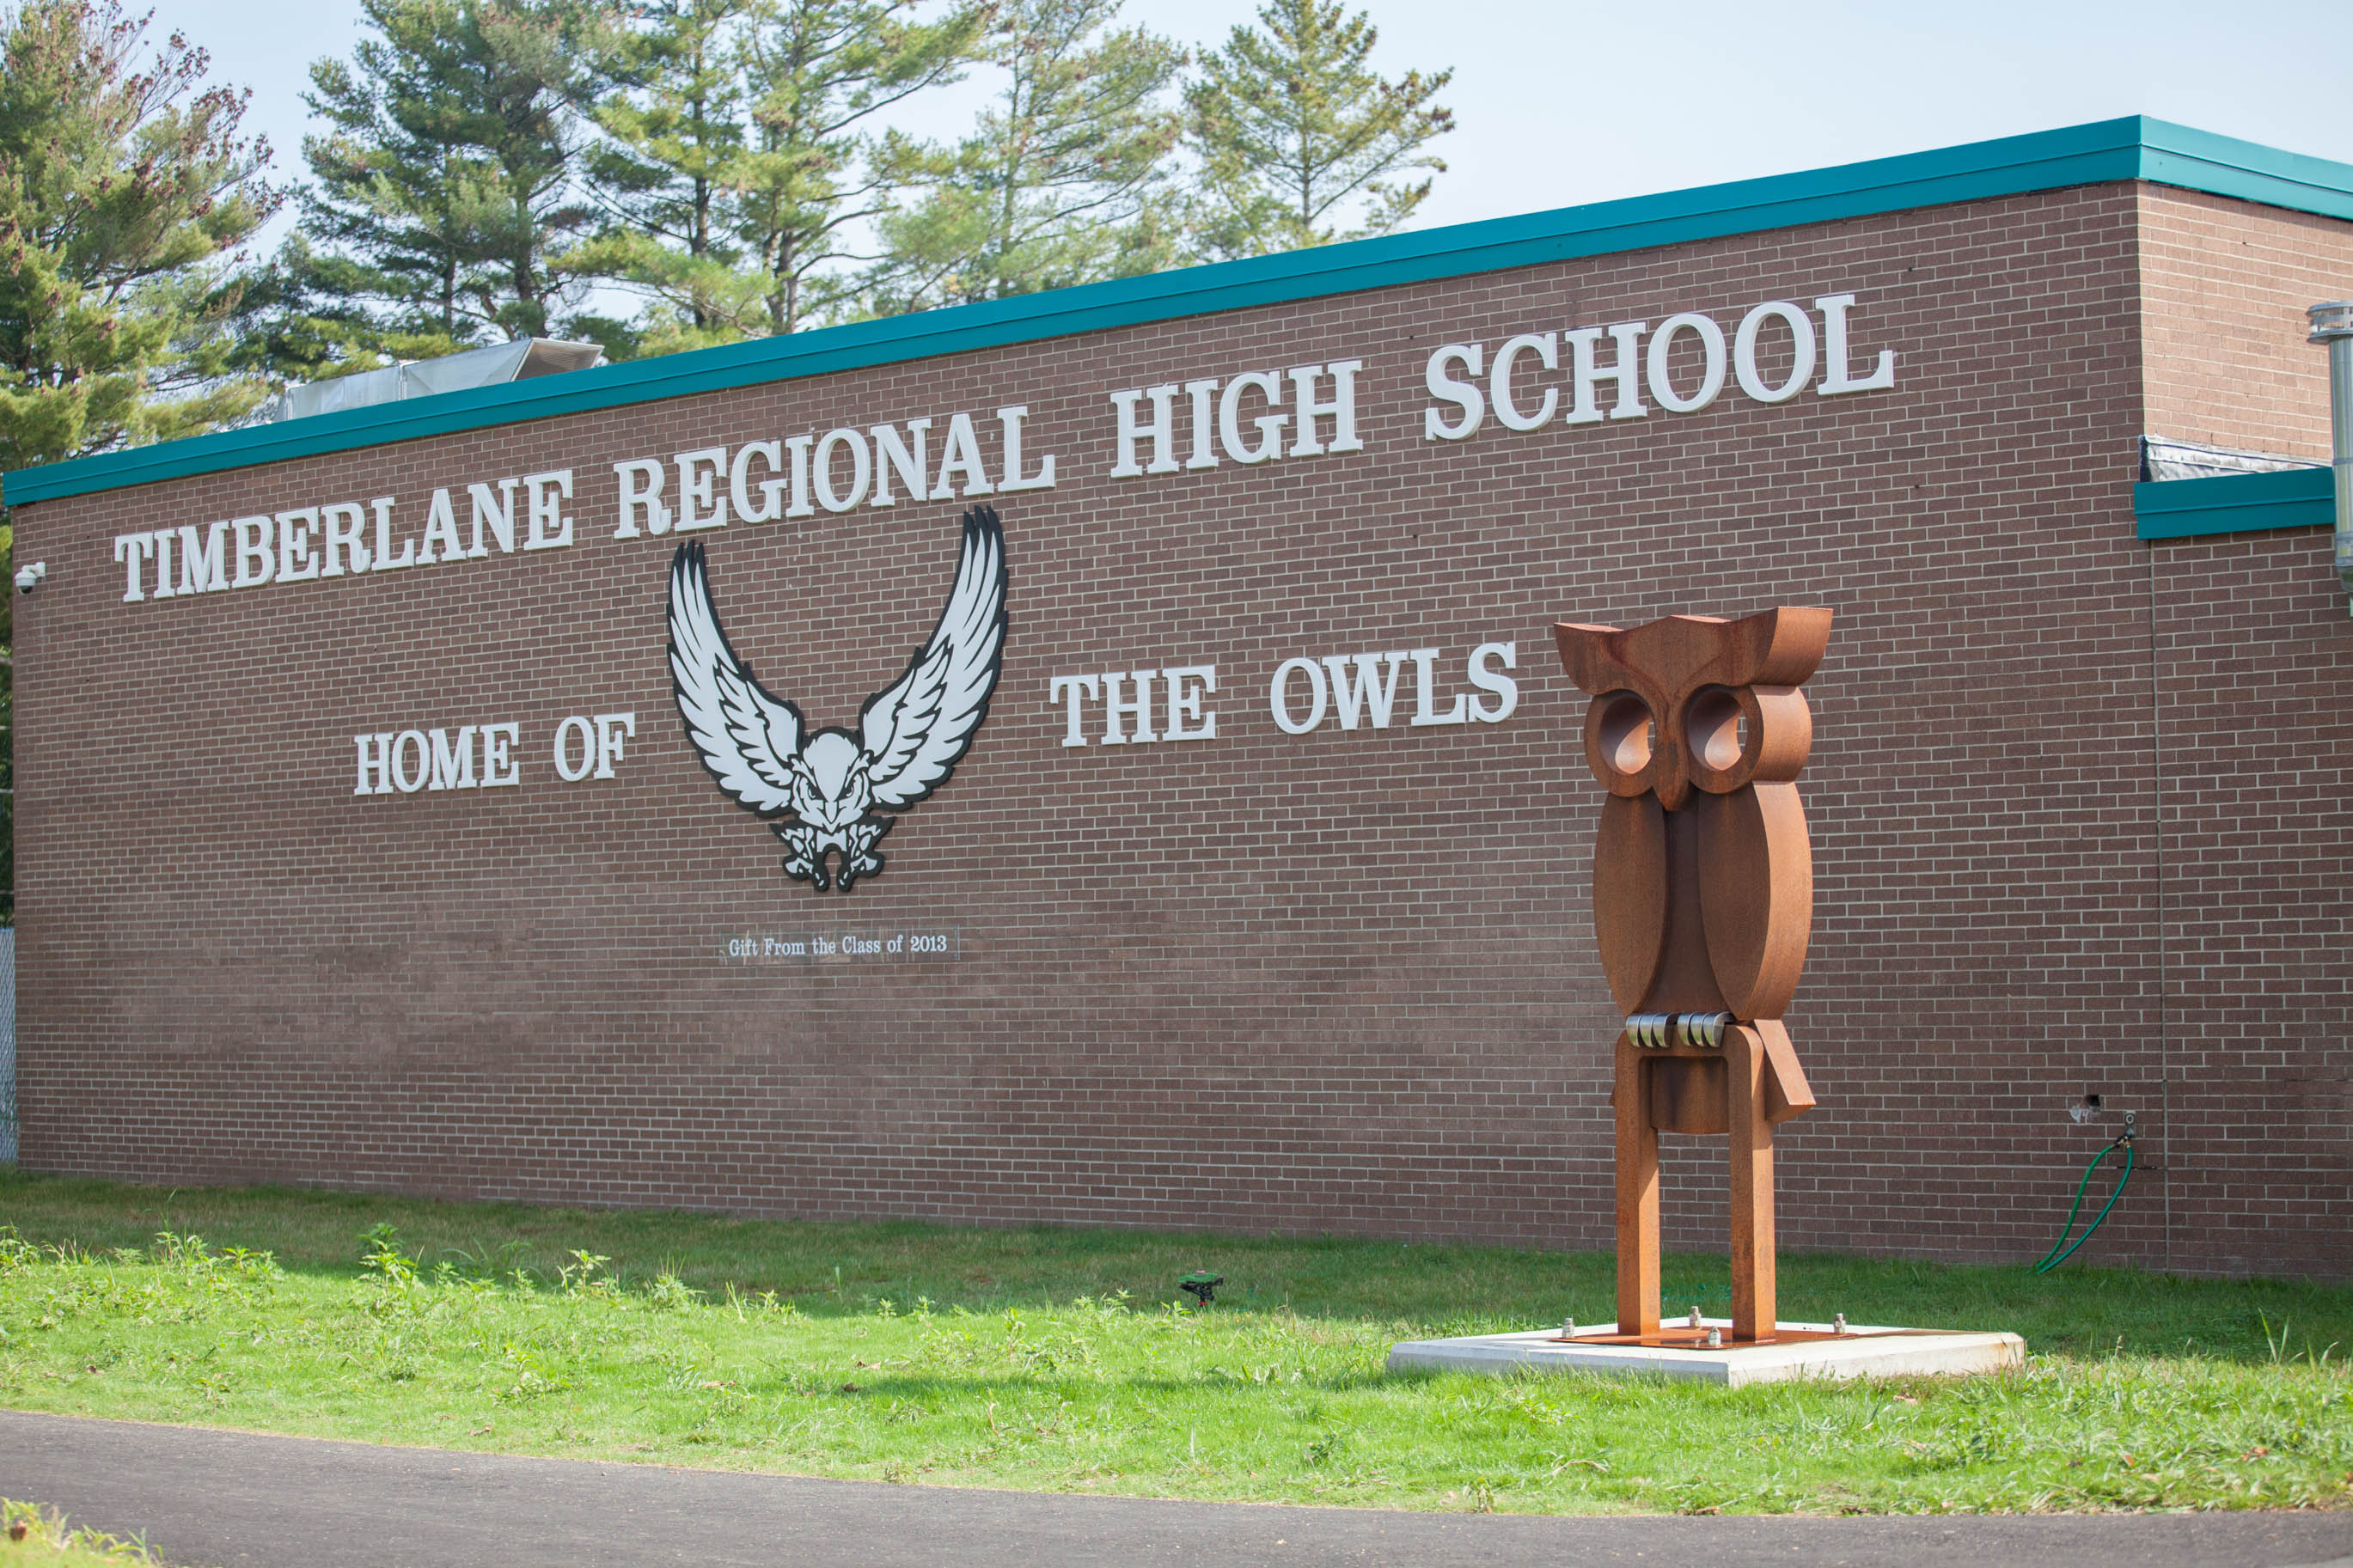 Hoot - Timberlane Regional High School